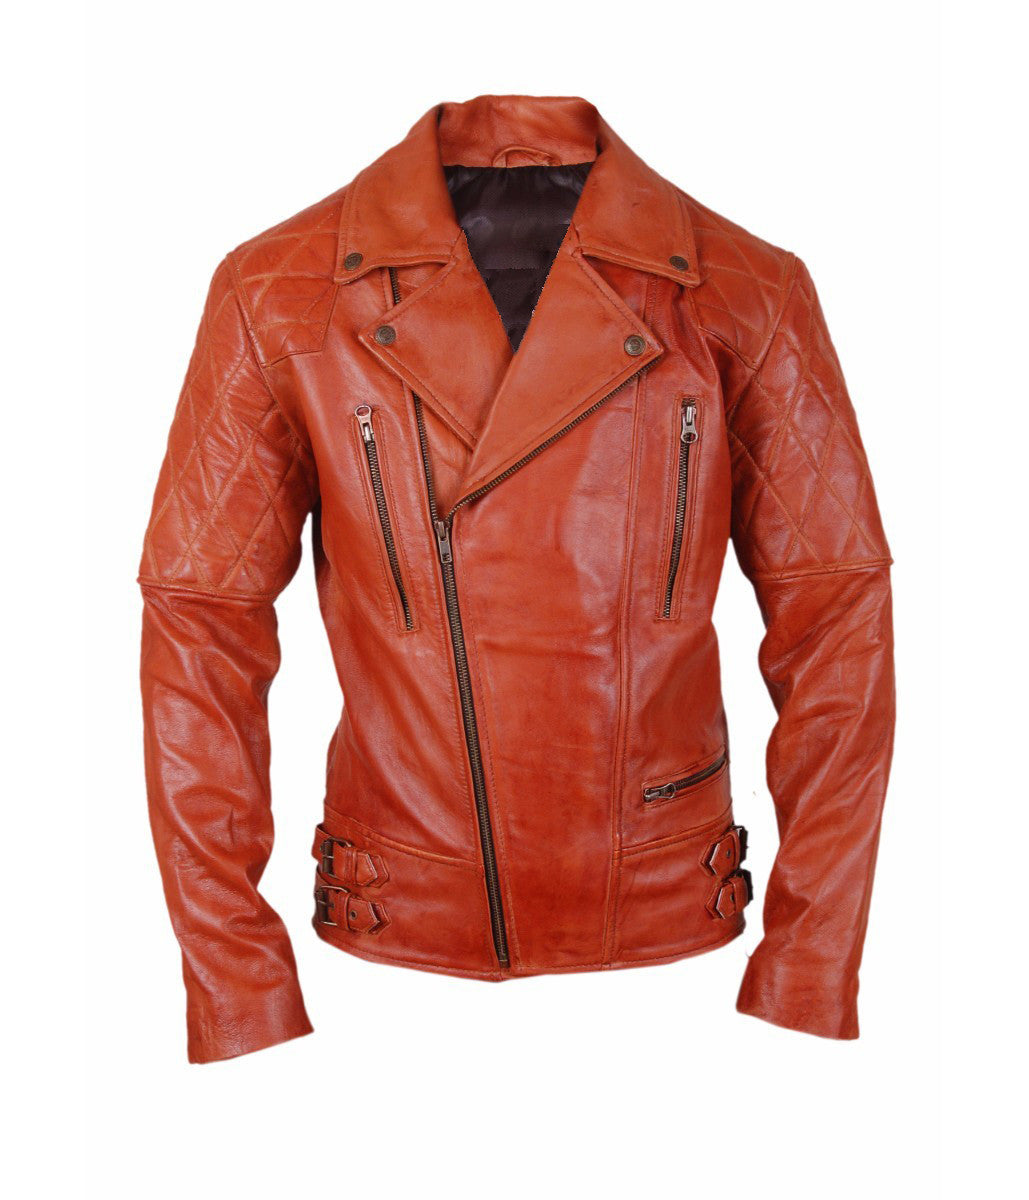 Diapo Leather Men's Red Orange Performance Padded  Motorcycle Cowhide Vegetable Tanned Leather       40% OFF